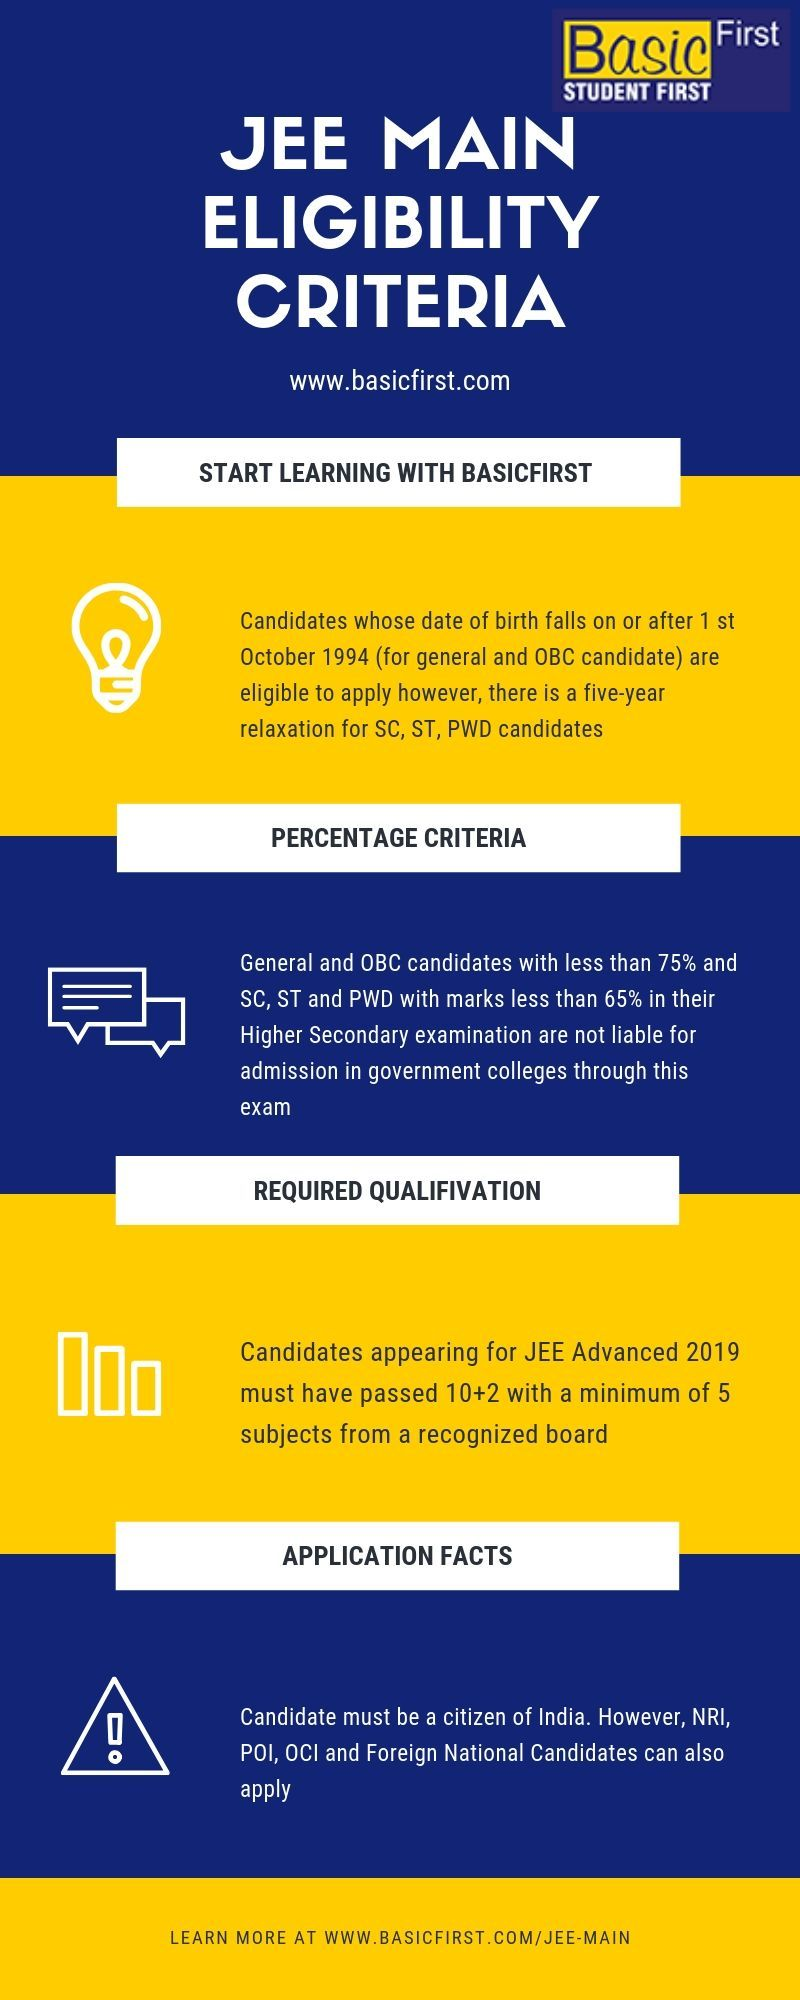 Iit Jee Mains 2020 Application Dates Out Syllabus Of Iit Jee Mains And Advance Previous Year Question Paper Syllabus Maine